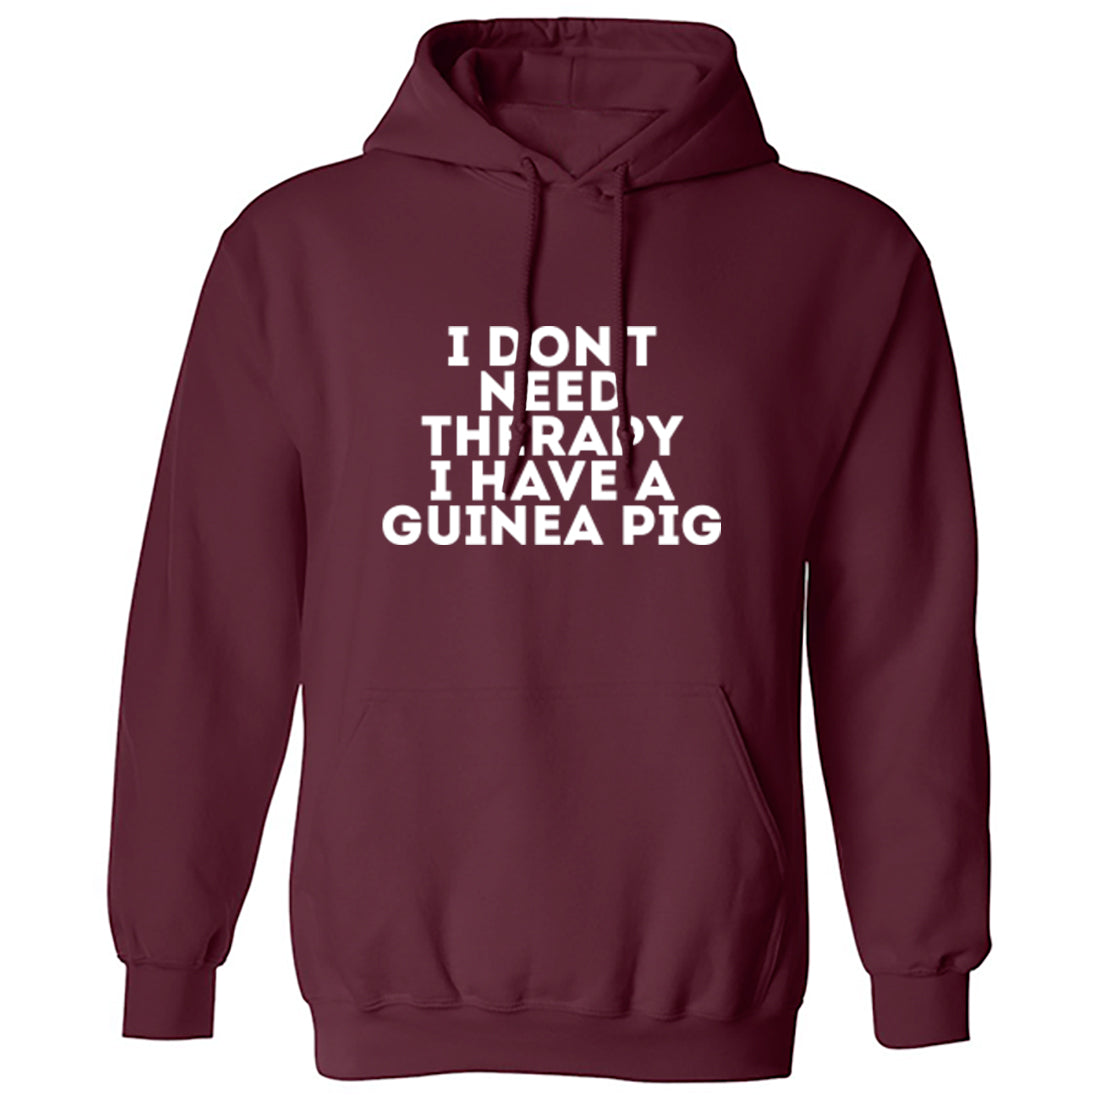 I Don't Need Therapy I Have A Guinea Pig Unisex Hoodie K1605 - Illustrated Identity Ltd.